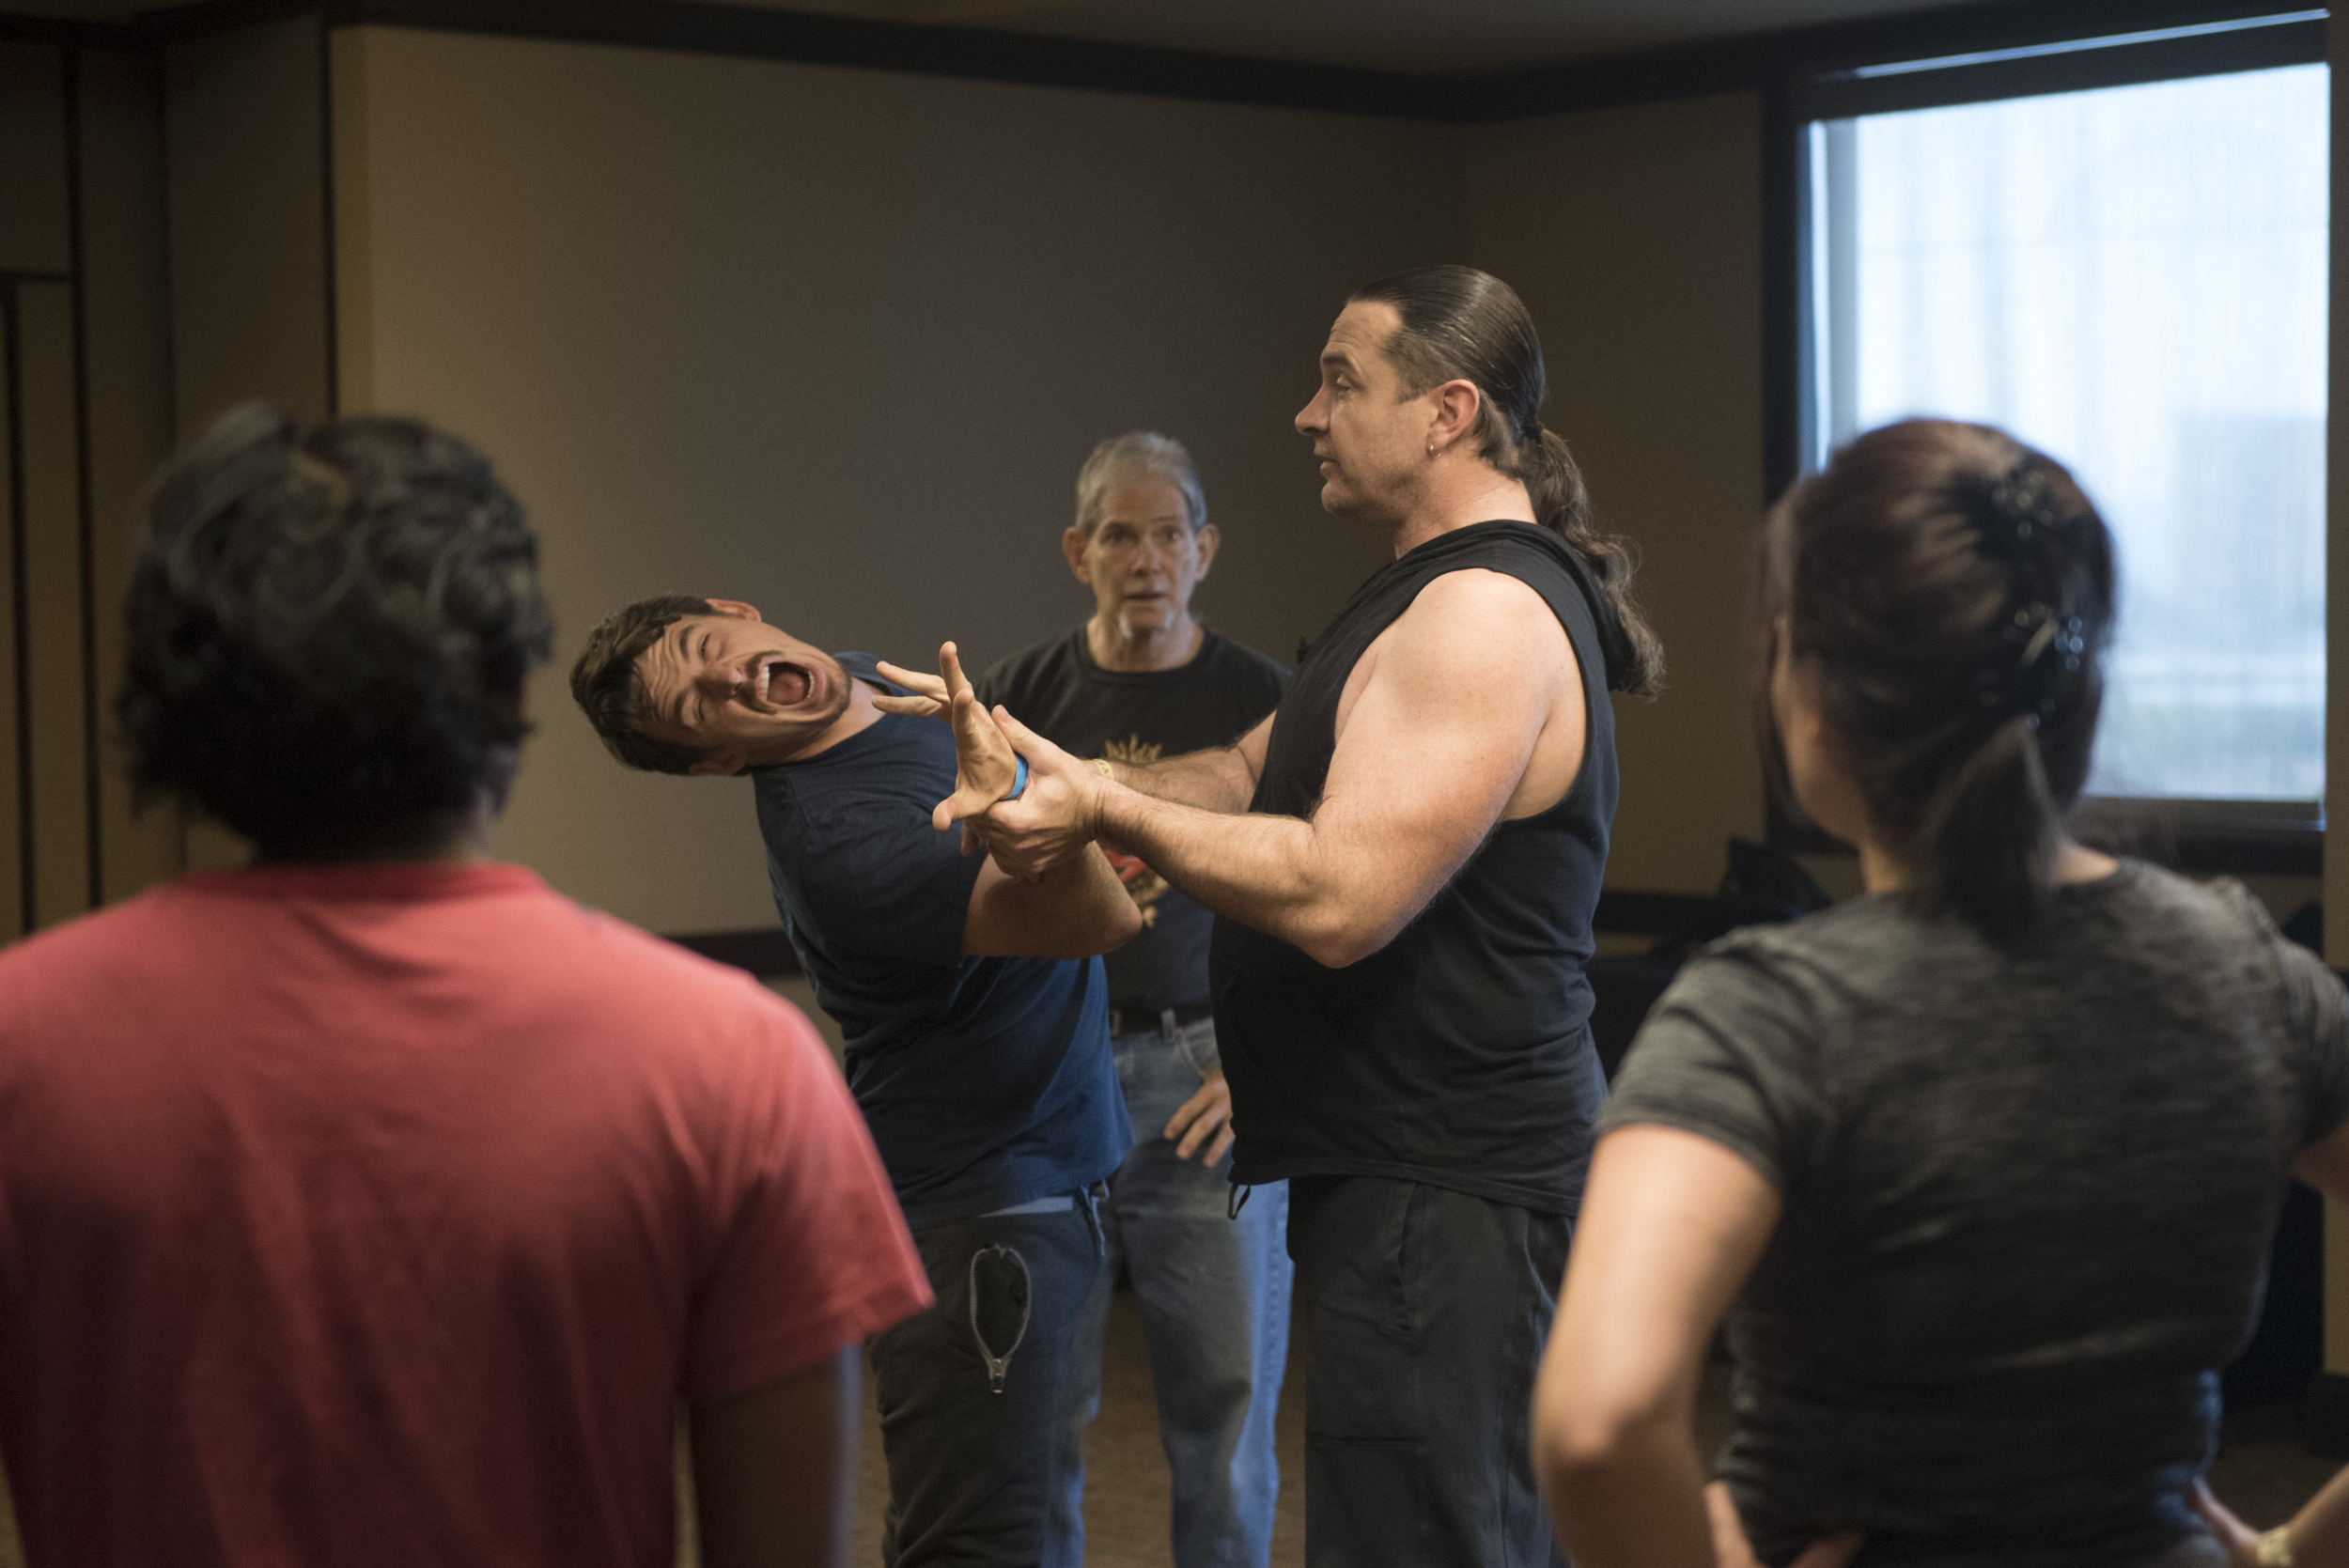 Kyle Rowling, fourth from left, teaches a takedowns class at CombatCon at The Palms Resort and Casino in Las Vegas, Saturday, June 27, 2015.(Jason Ogulnik/Las Vegas Review-Journal)